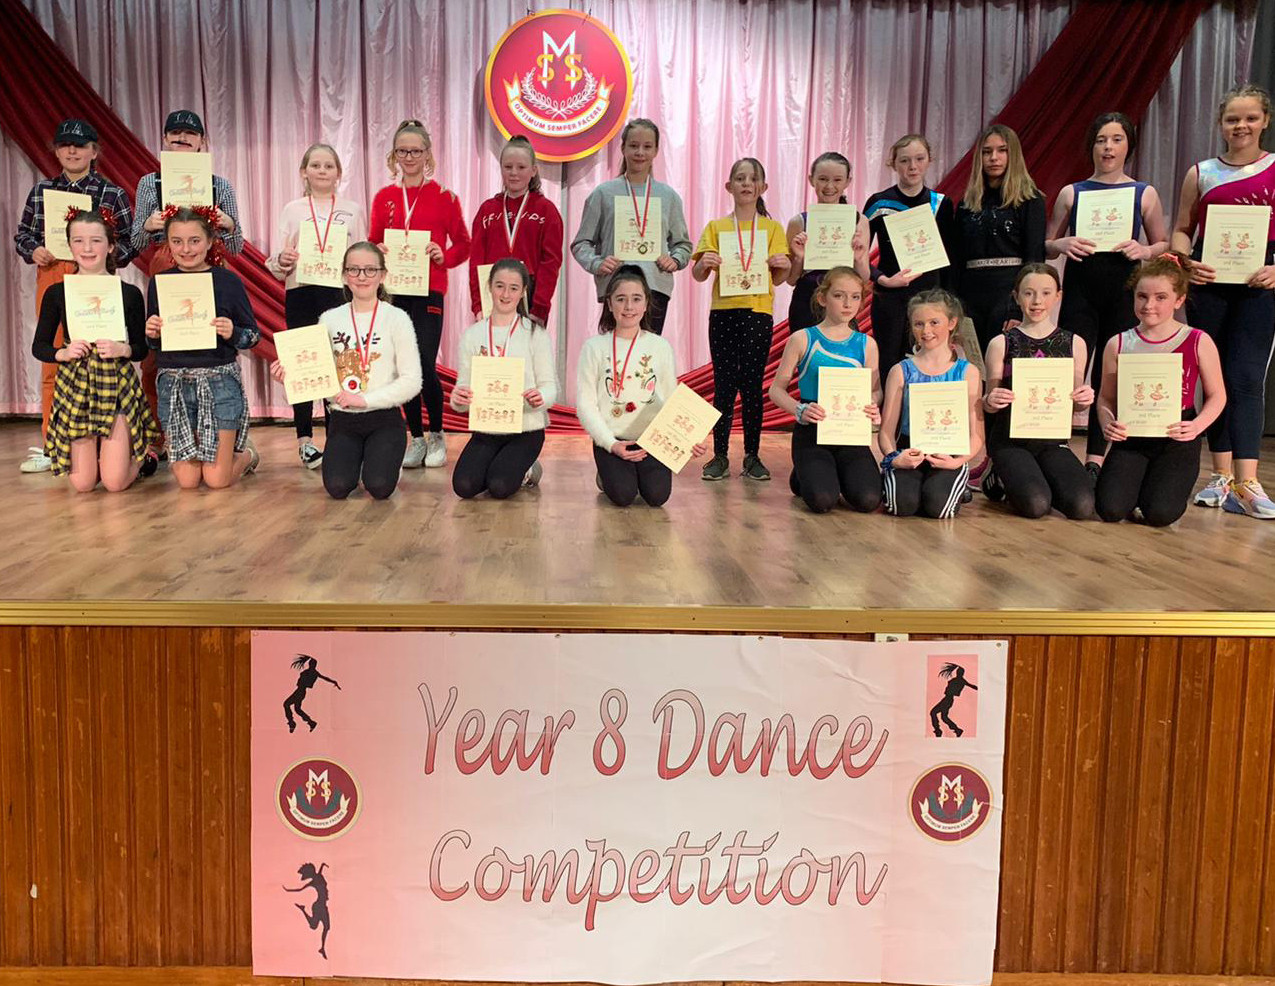 Year 8 Dance Competition 2019 app 3